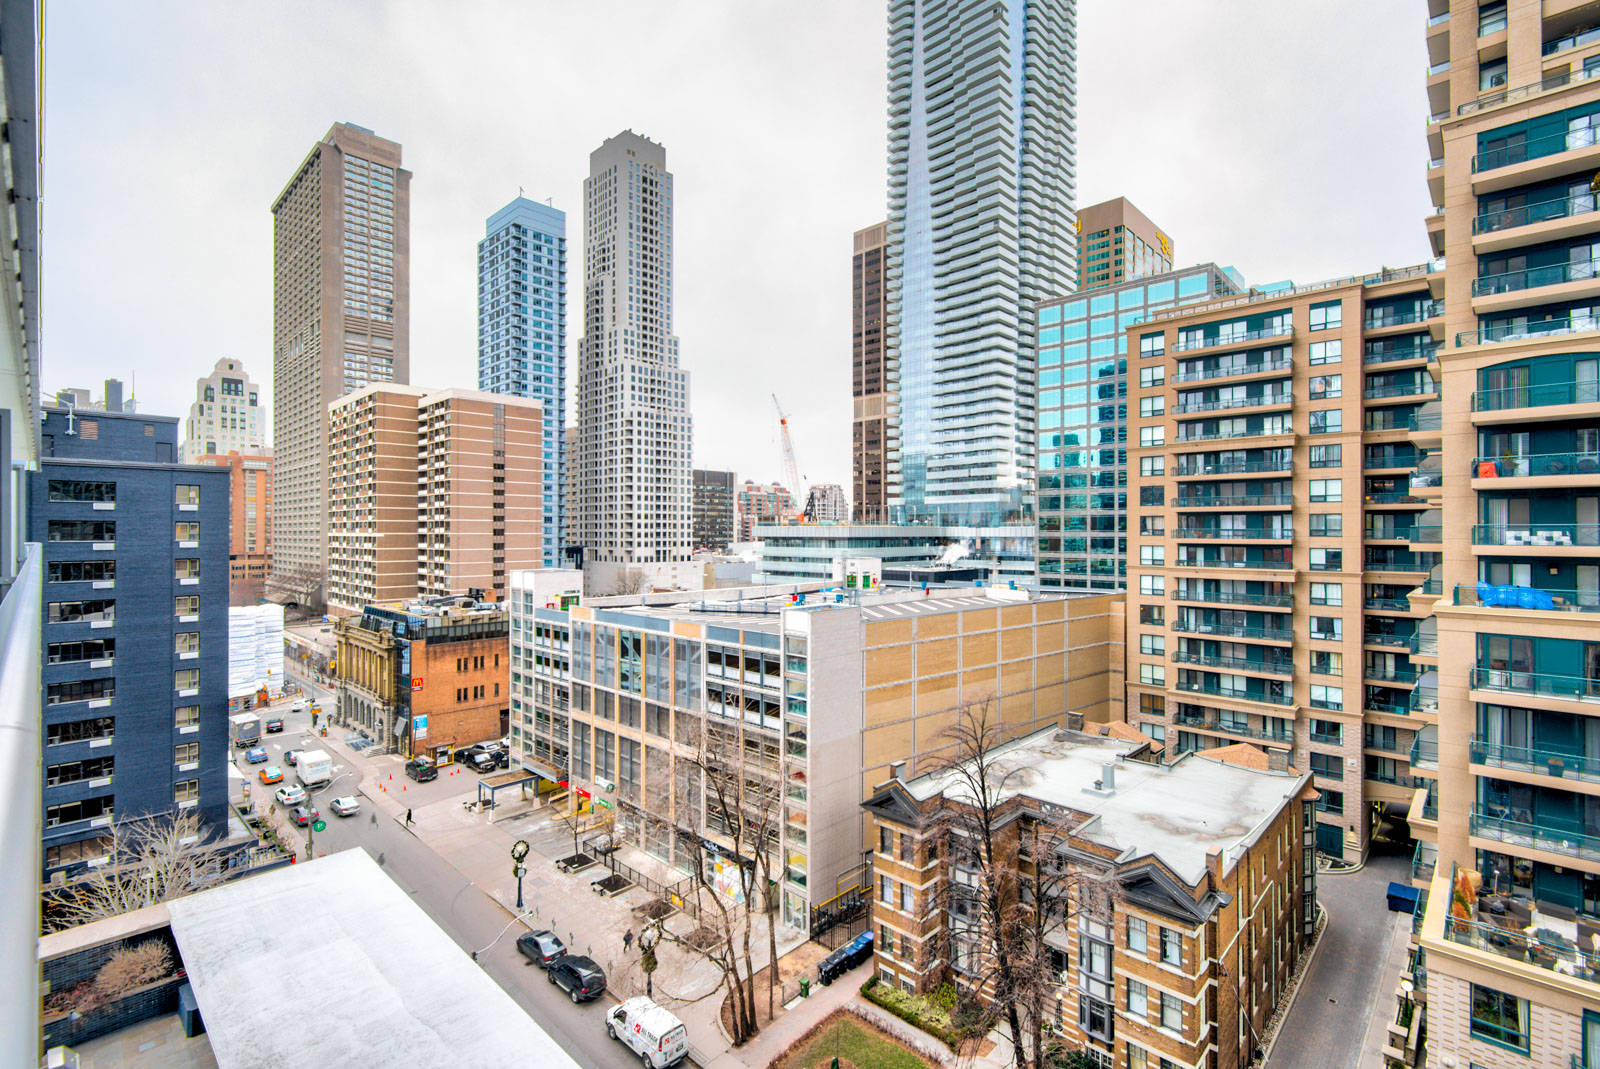 View from Casa Condos and 33 Charles St E balcony of Church-Yonge Corridor